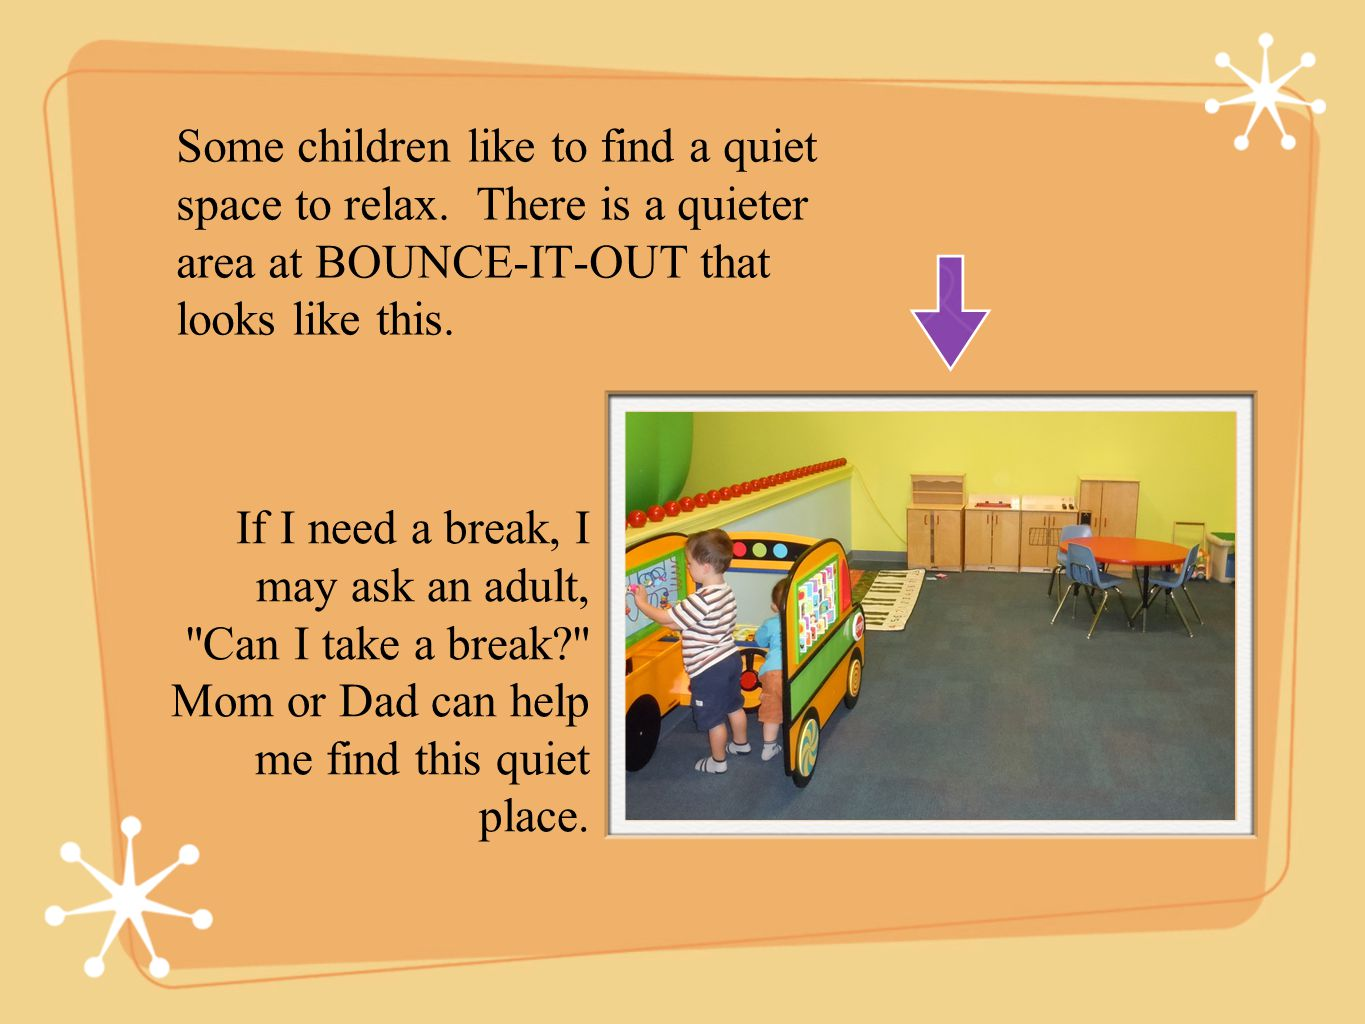 Some children like to find a quiet space to relax.